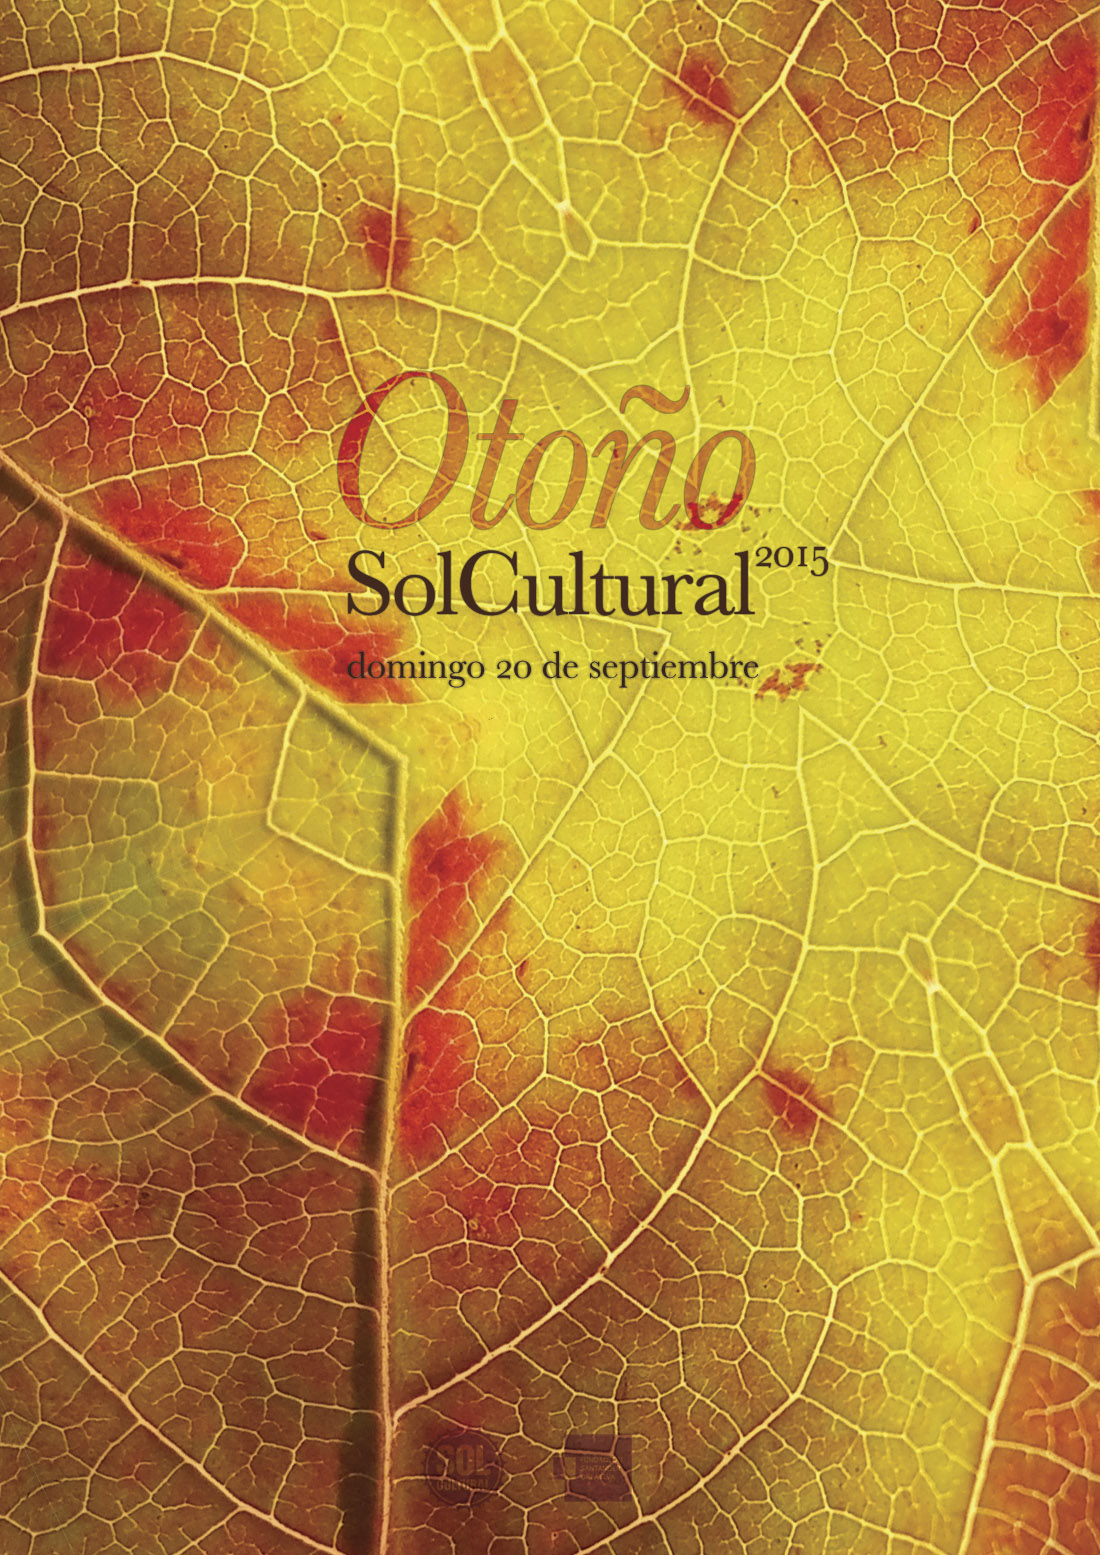 2015 - otoño Solcultural - Beusual